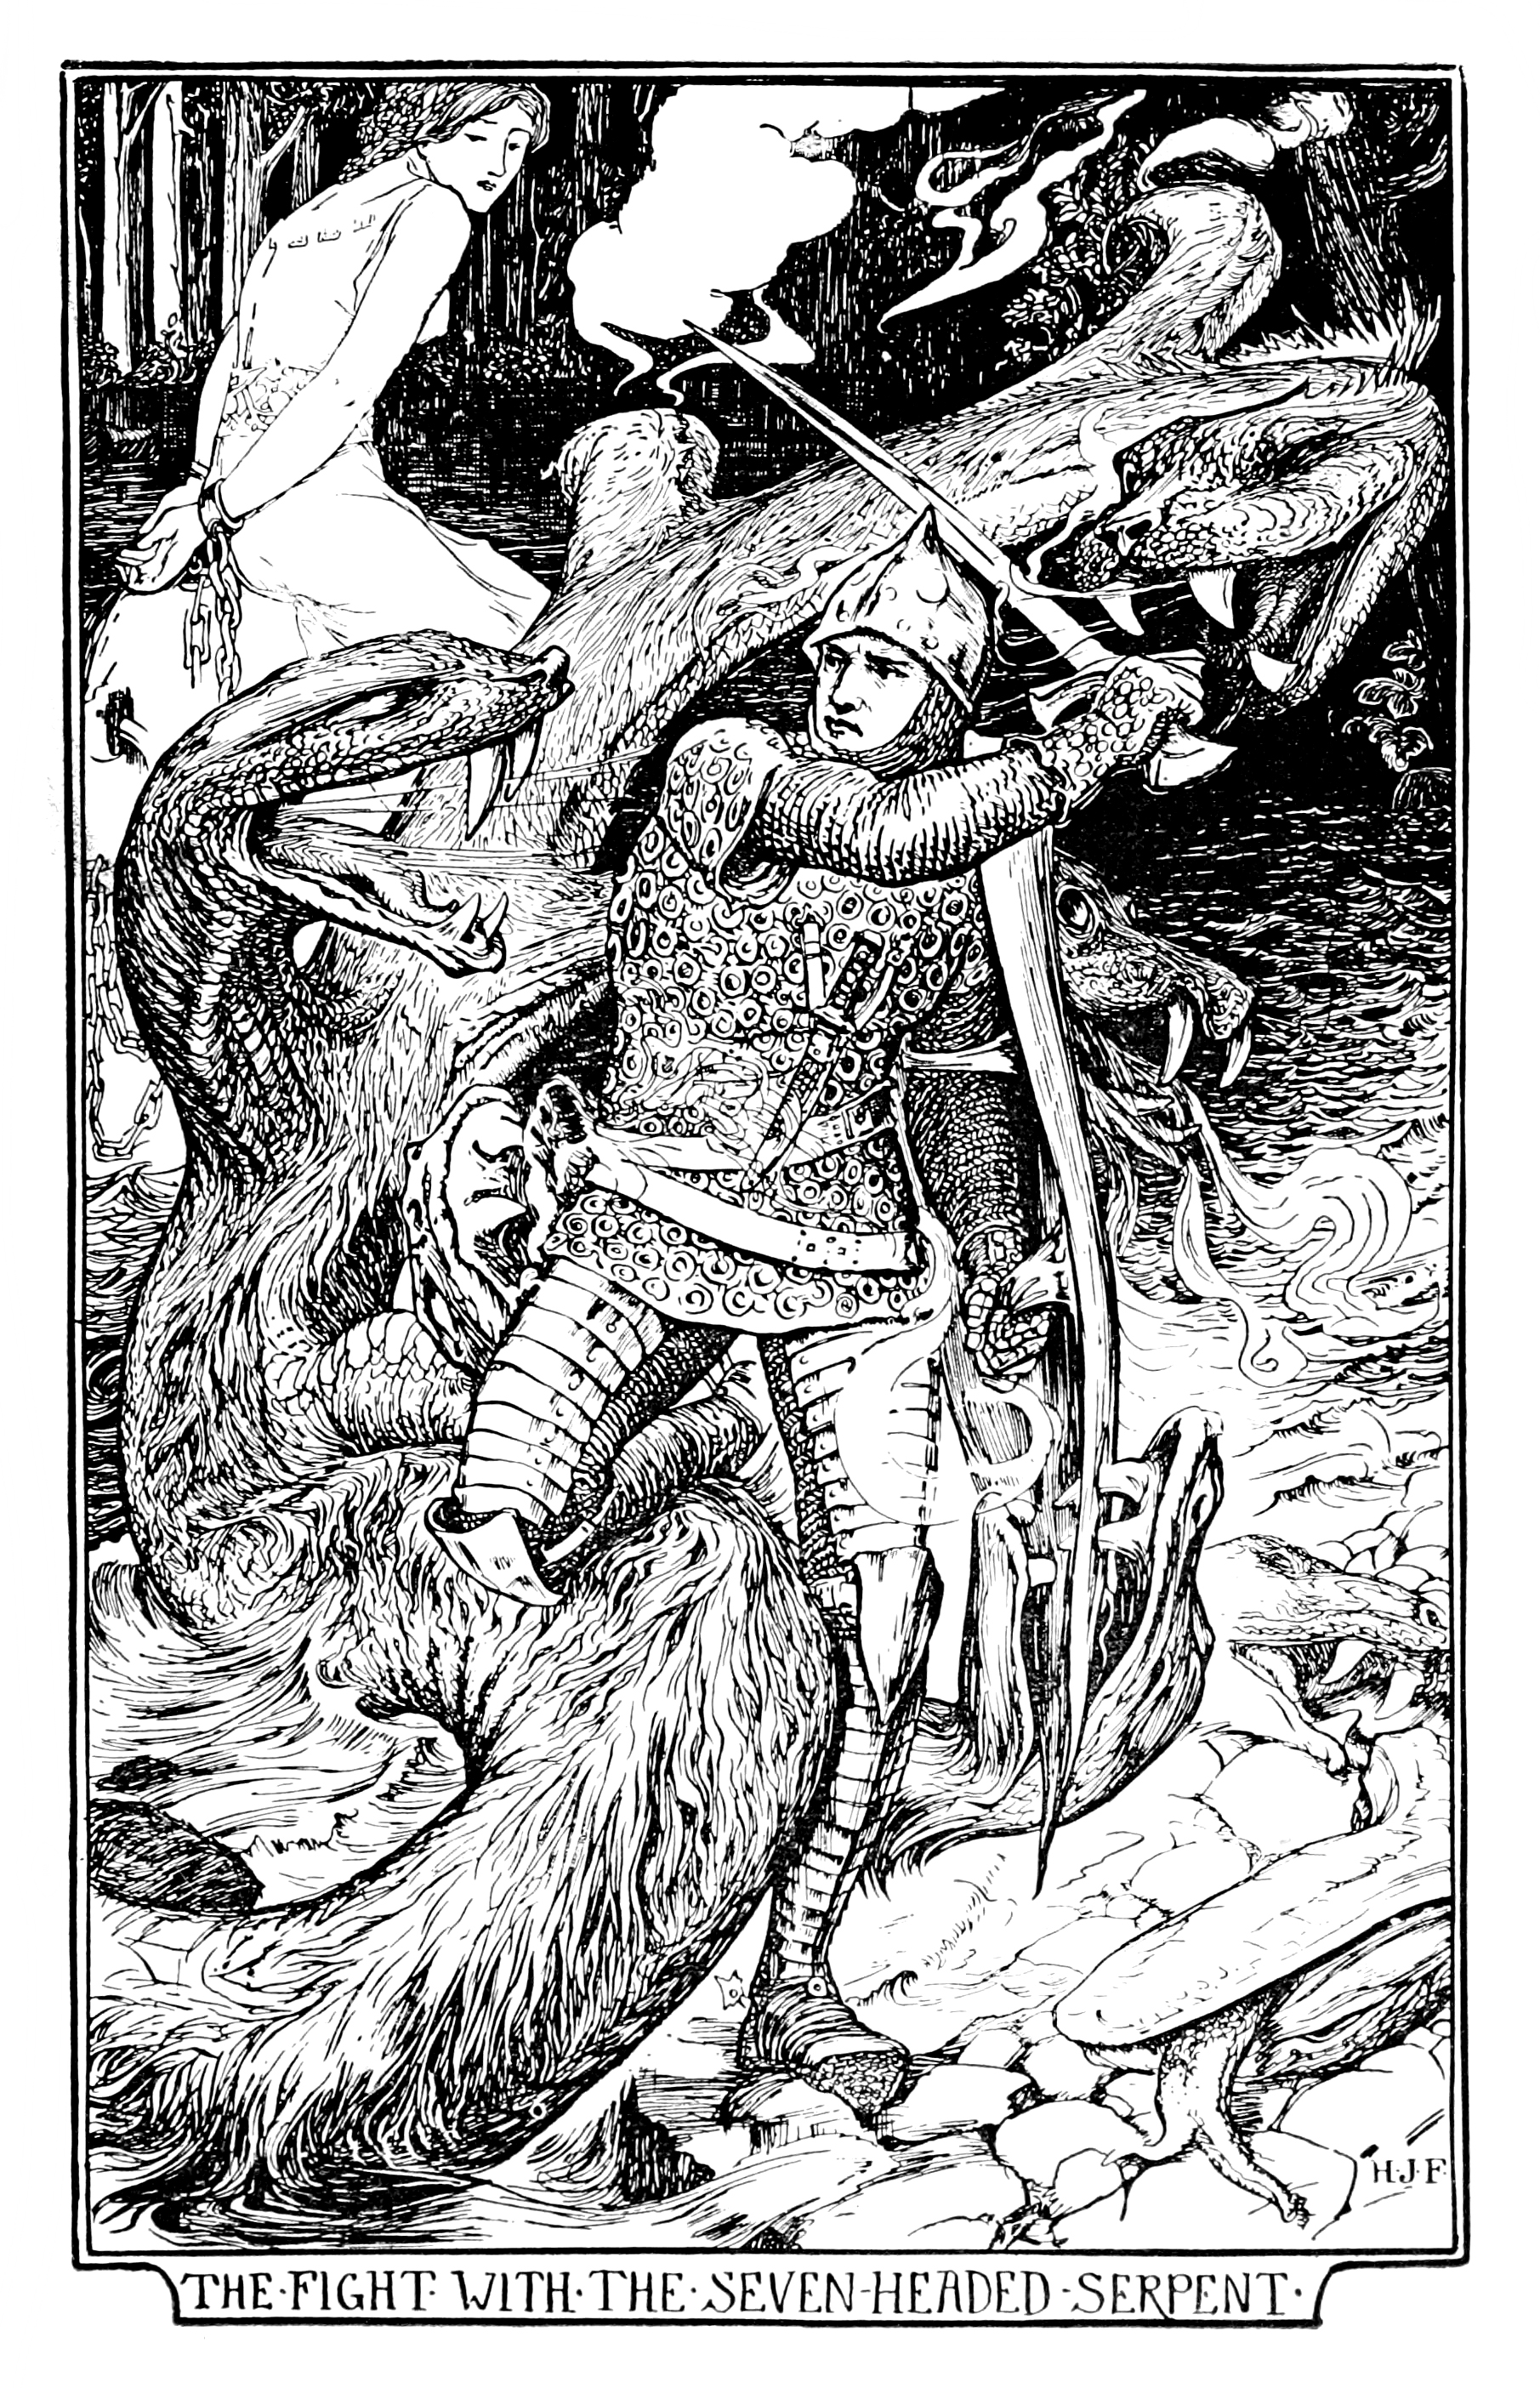 Henry Justice Ford - The pink fairy book, edited by Andrew Lang, 1897 (illustration 12)